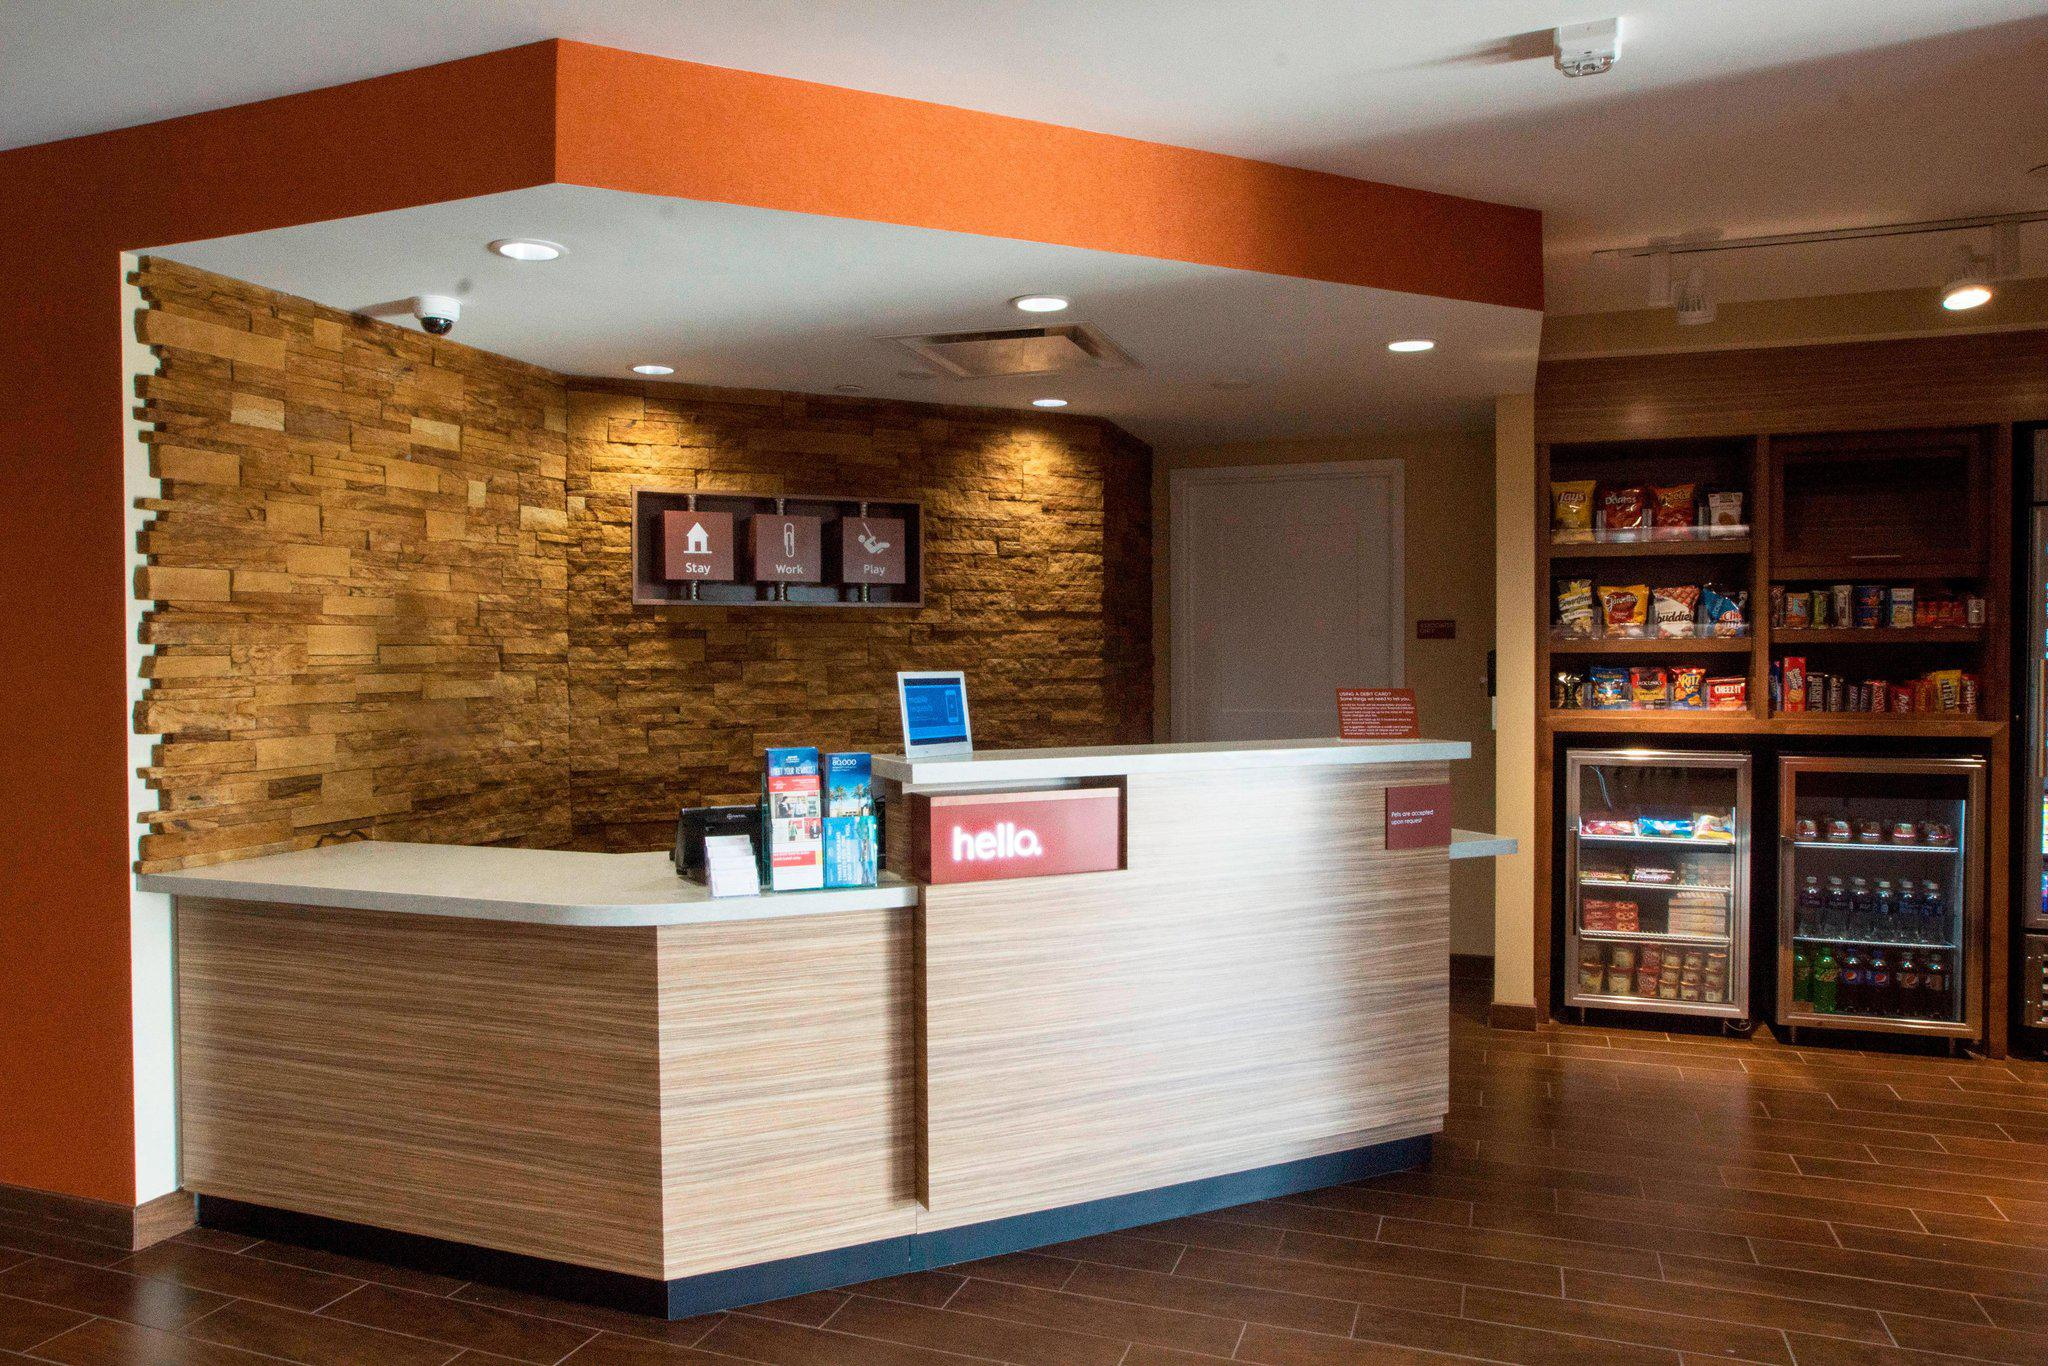 TownePlace Suites by Marriott Pittsburgh Cranberry Township